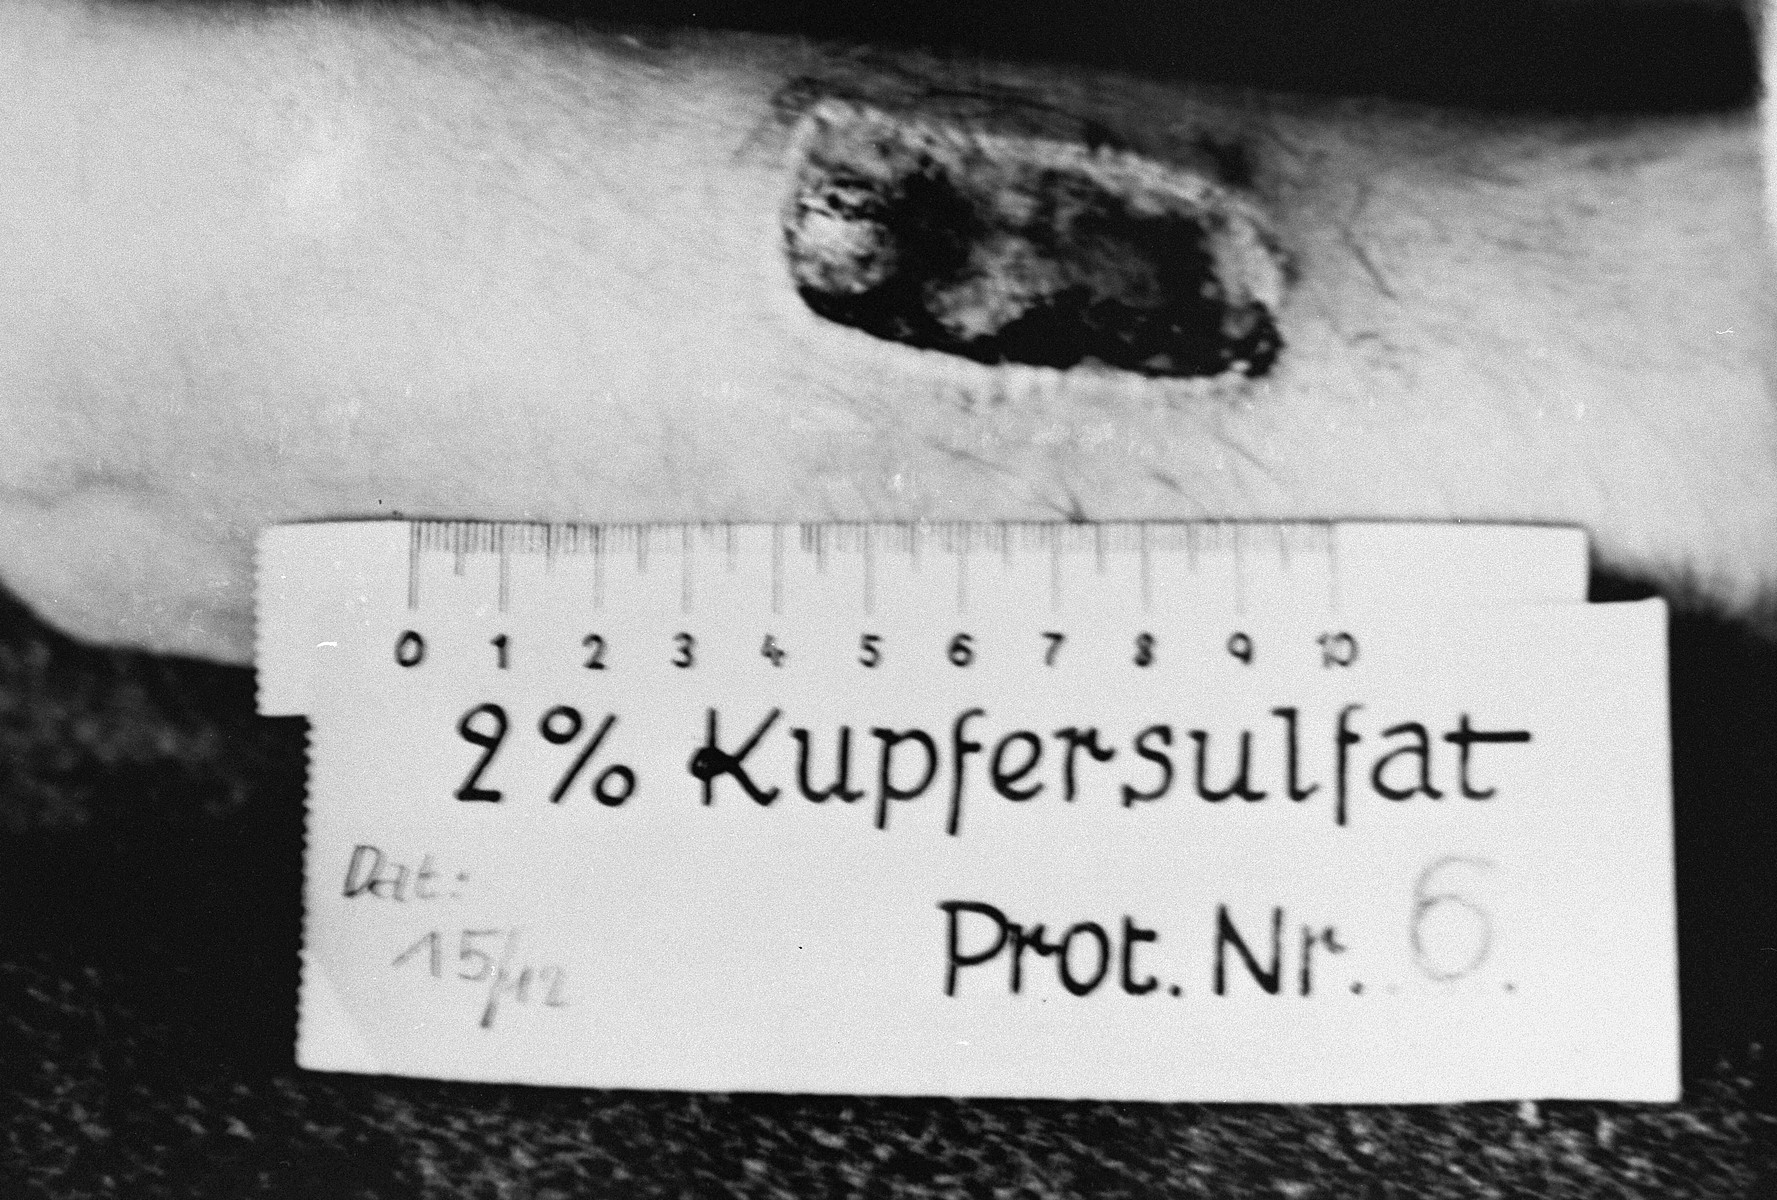 A photograph of the results of a medical experiment dealing with phosphorous, that was carried out by doctors at Ravensbrueck.    In the experiment, a mixture of phosphorus and rubber was applied to the skin and ignited.  After twenty seconds, the fire was extinguished with water and then wiped with R17.  After three days, the burn was treated with Echinacin in liquid form.  After two weeks the wound had healed.  This photograph, taken by a camp physician, was entered as evidence during the Doctors Trial at Nuremberg.